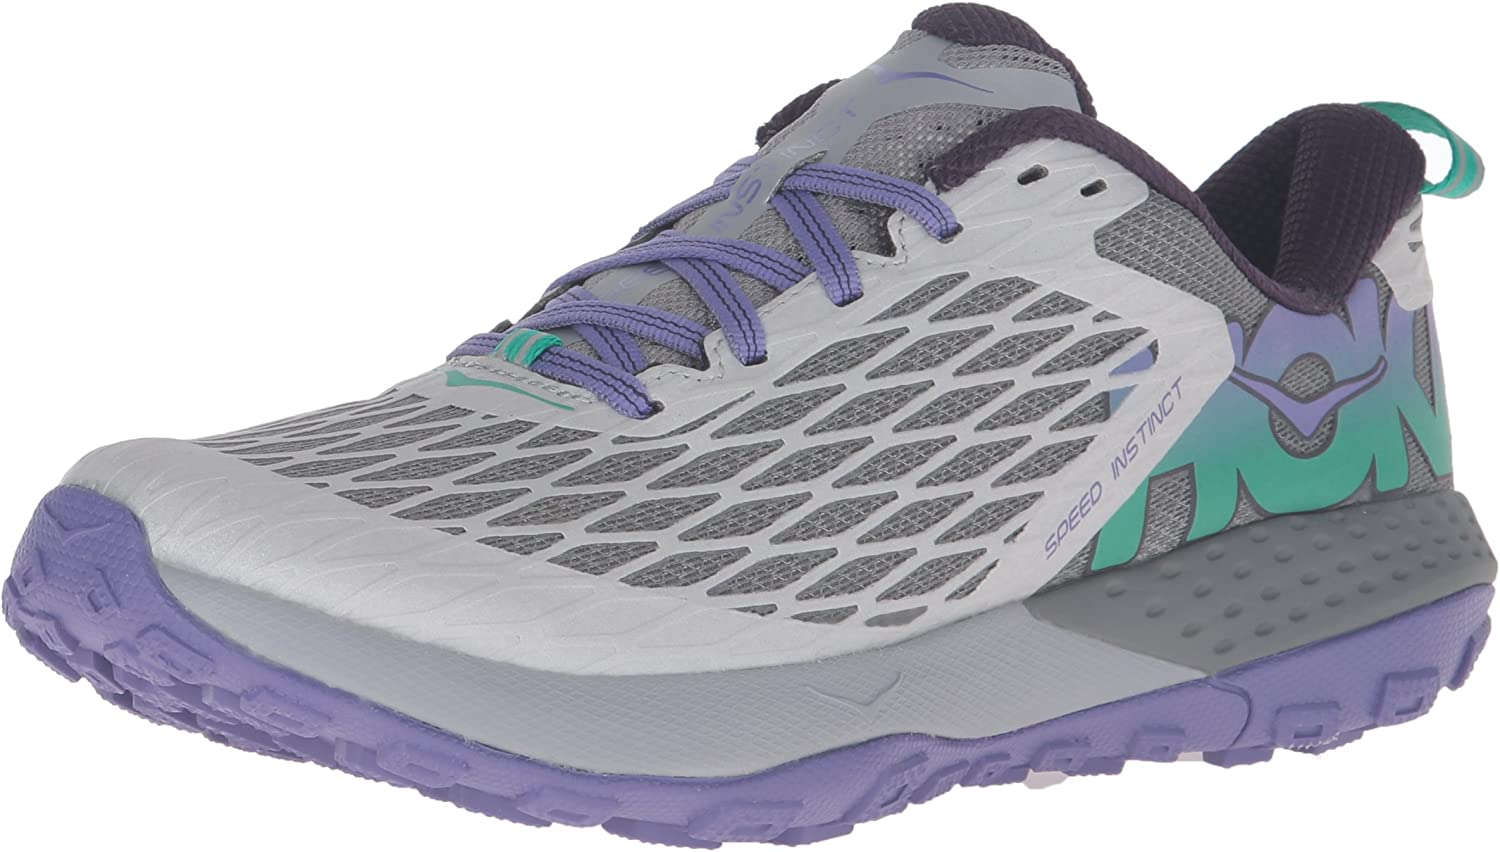 HOKA ONE ONE Women s Speed Instinct Trail Running Sneaker Shoe